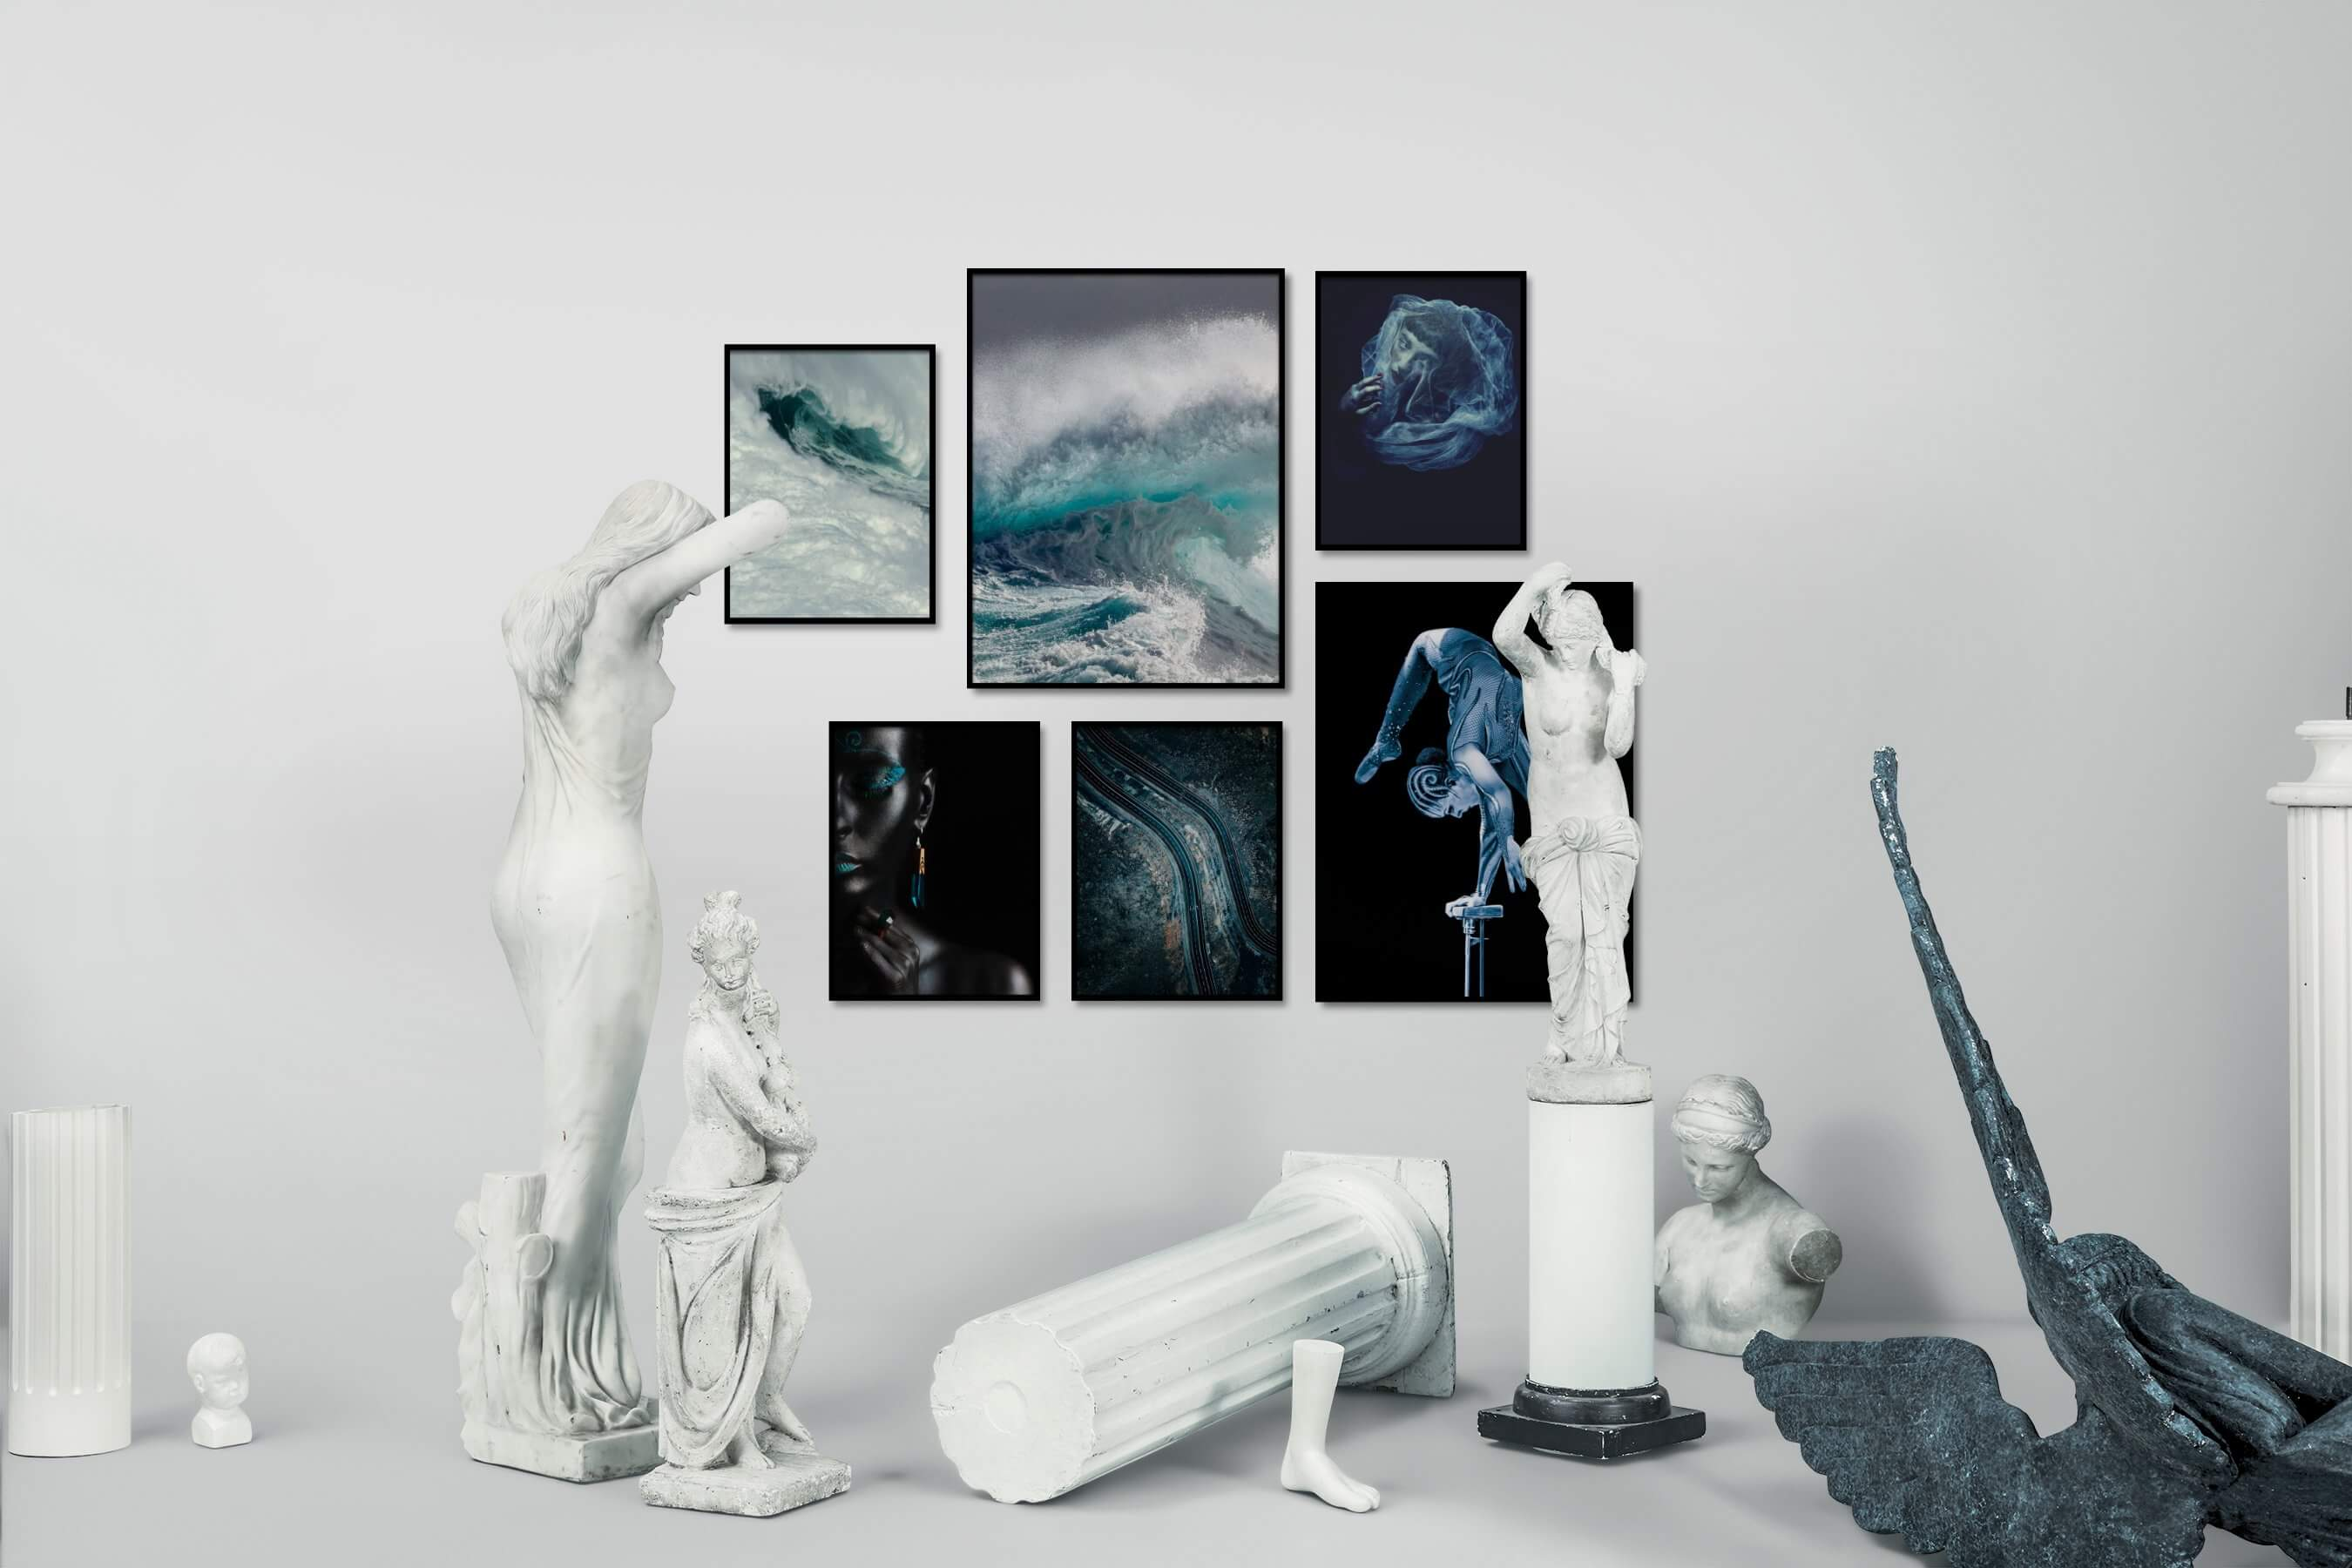 Gallery wall idea with six framed pictures arranged on a wall depicting Beach & Water, Fashion & Beauty, Dark Tones, For the Moderate, Country Life, and For the Minimalist